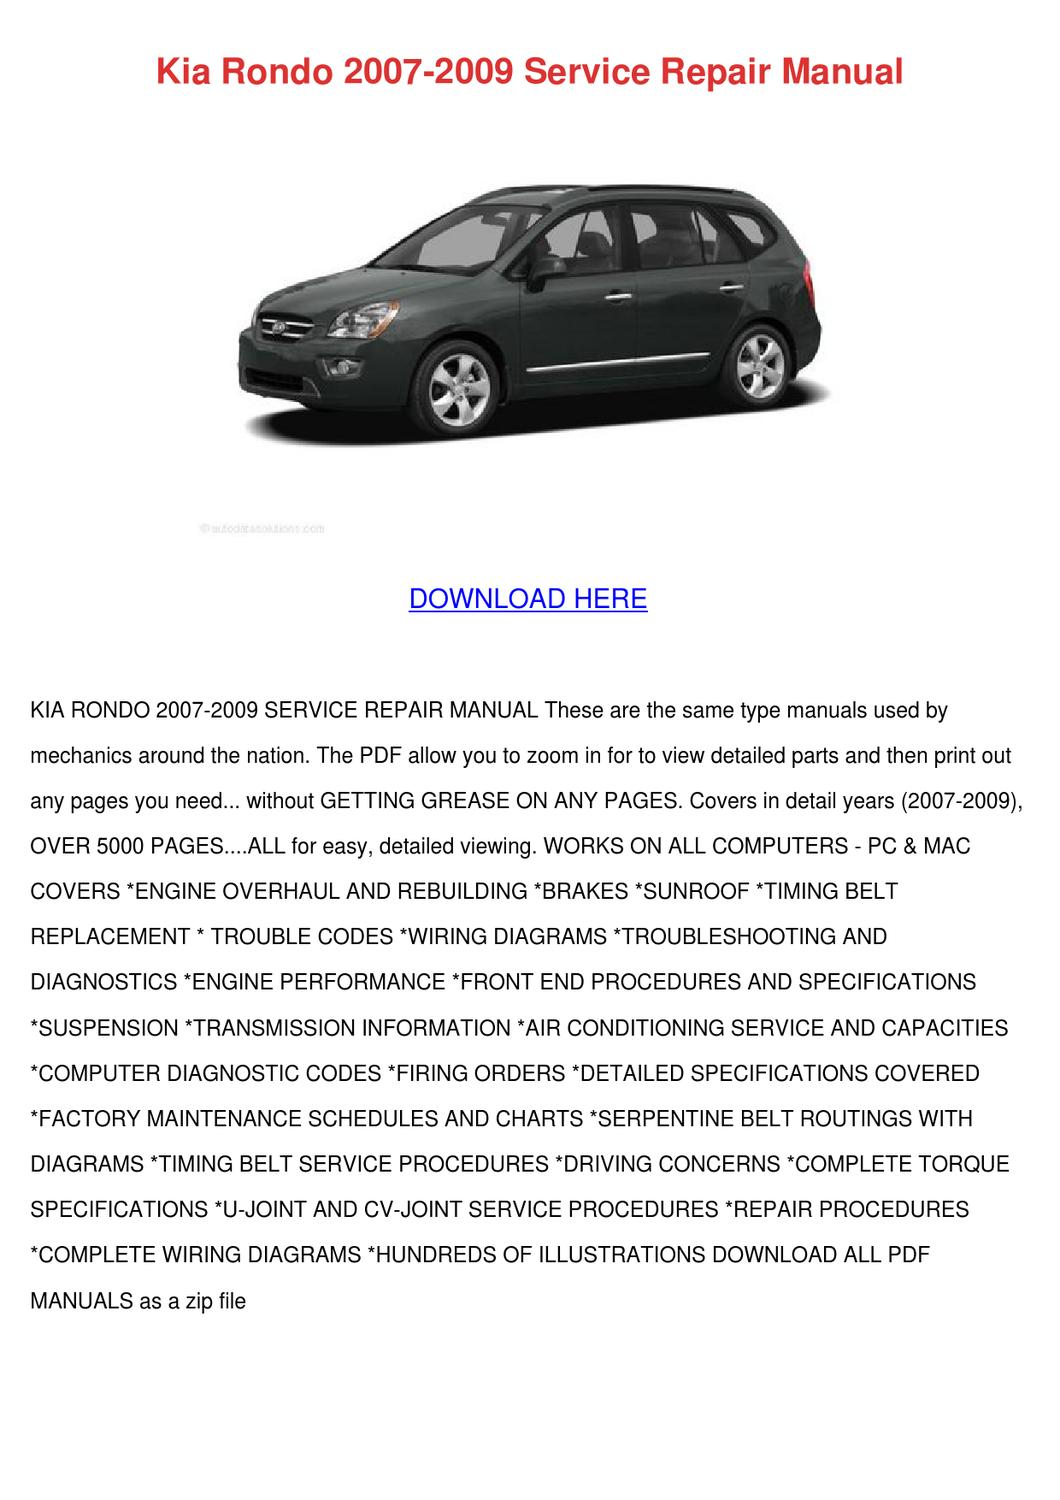 kia rondo 2007 2009 service repair manual by mindy lufsey. Black Bedroom Furniture Sets. Home Design Ideas